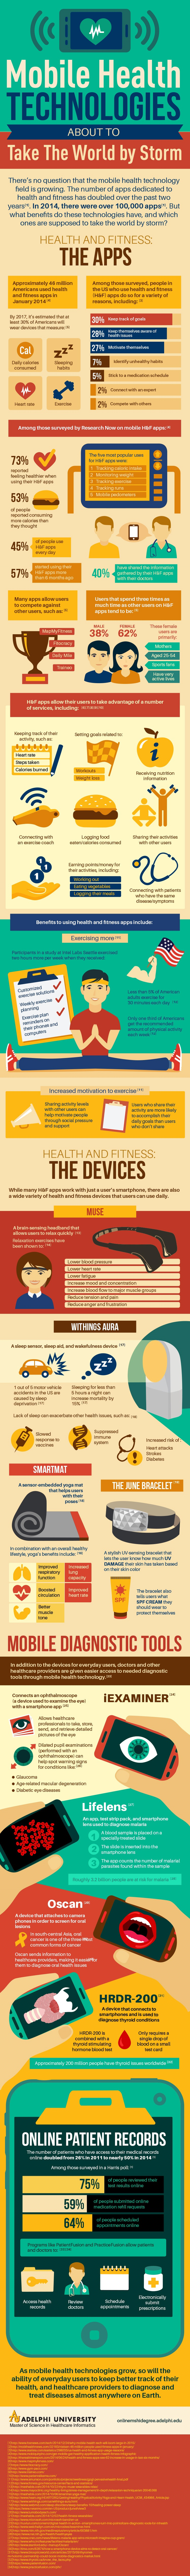 Mobile-Health-Technology-infographic